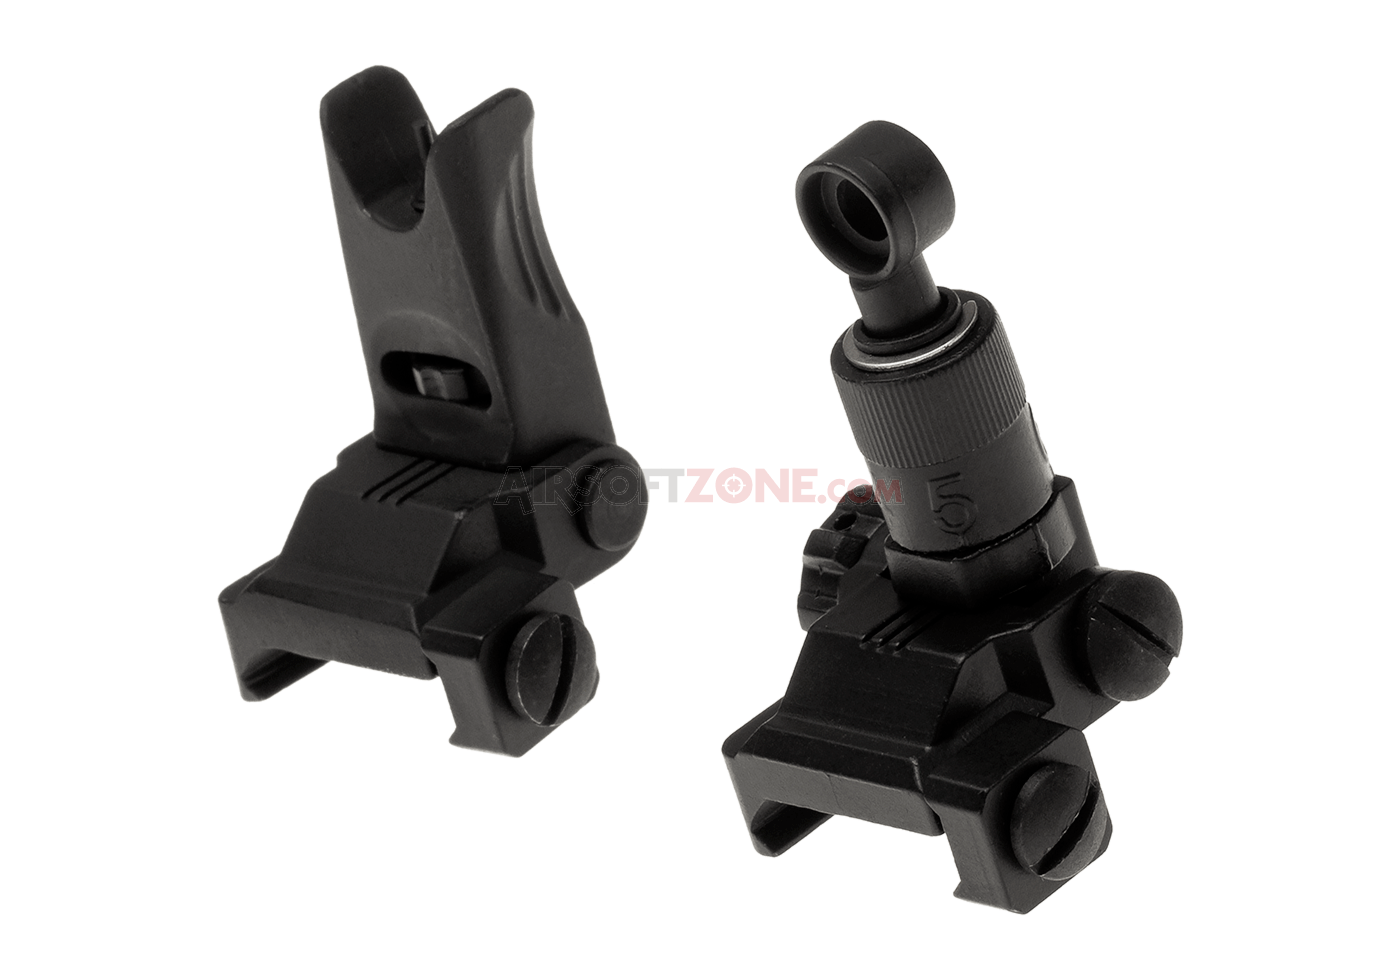 600m Flip-Up Sights imagine